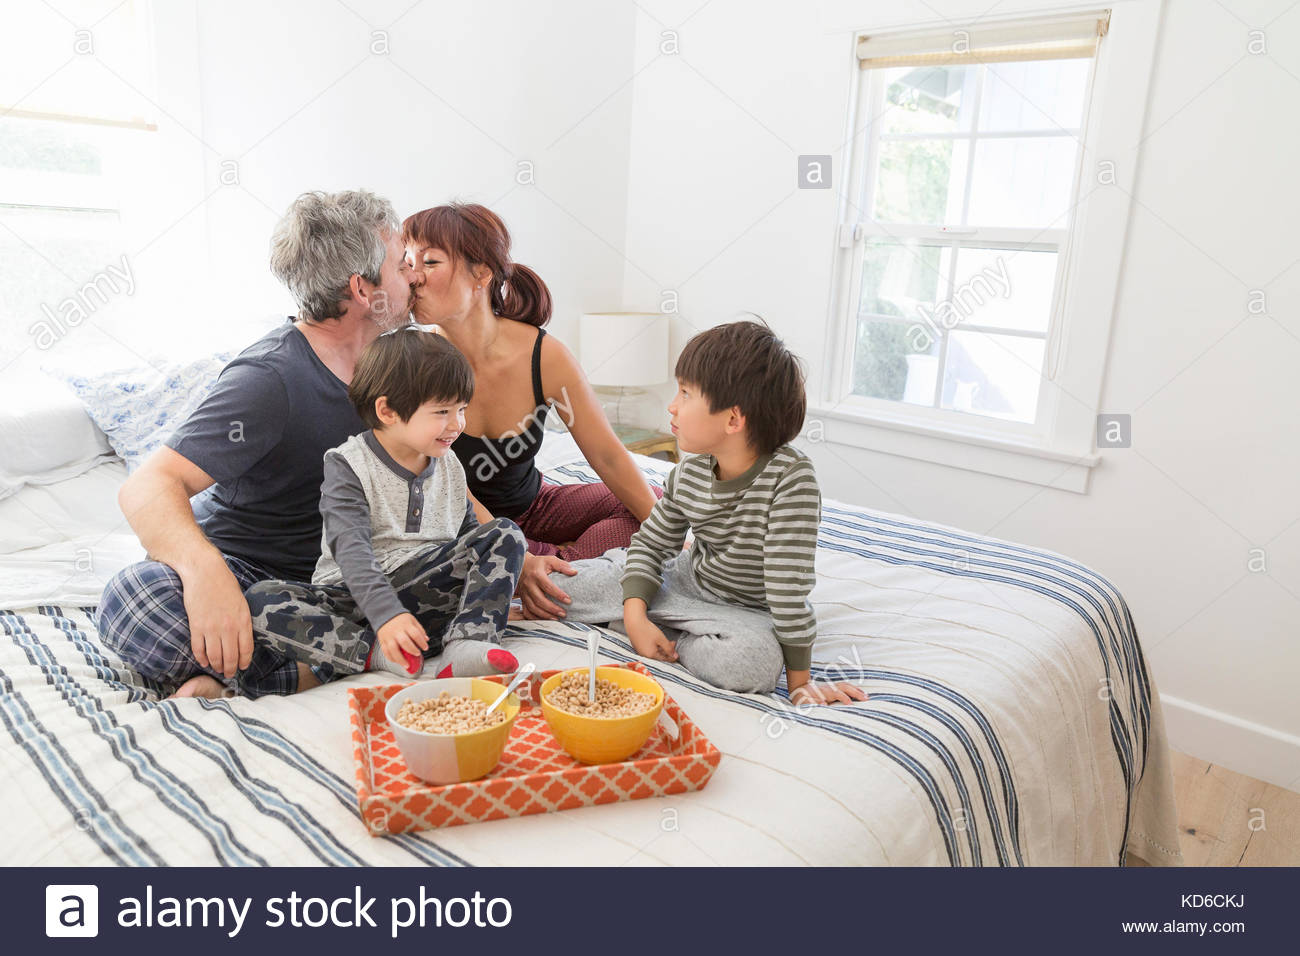 Young family eating breakfast in bed - Stock Image